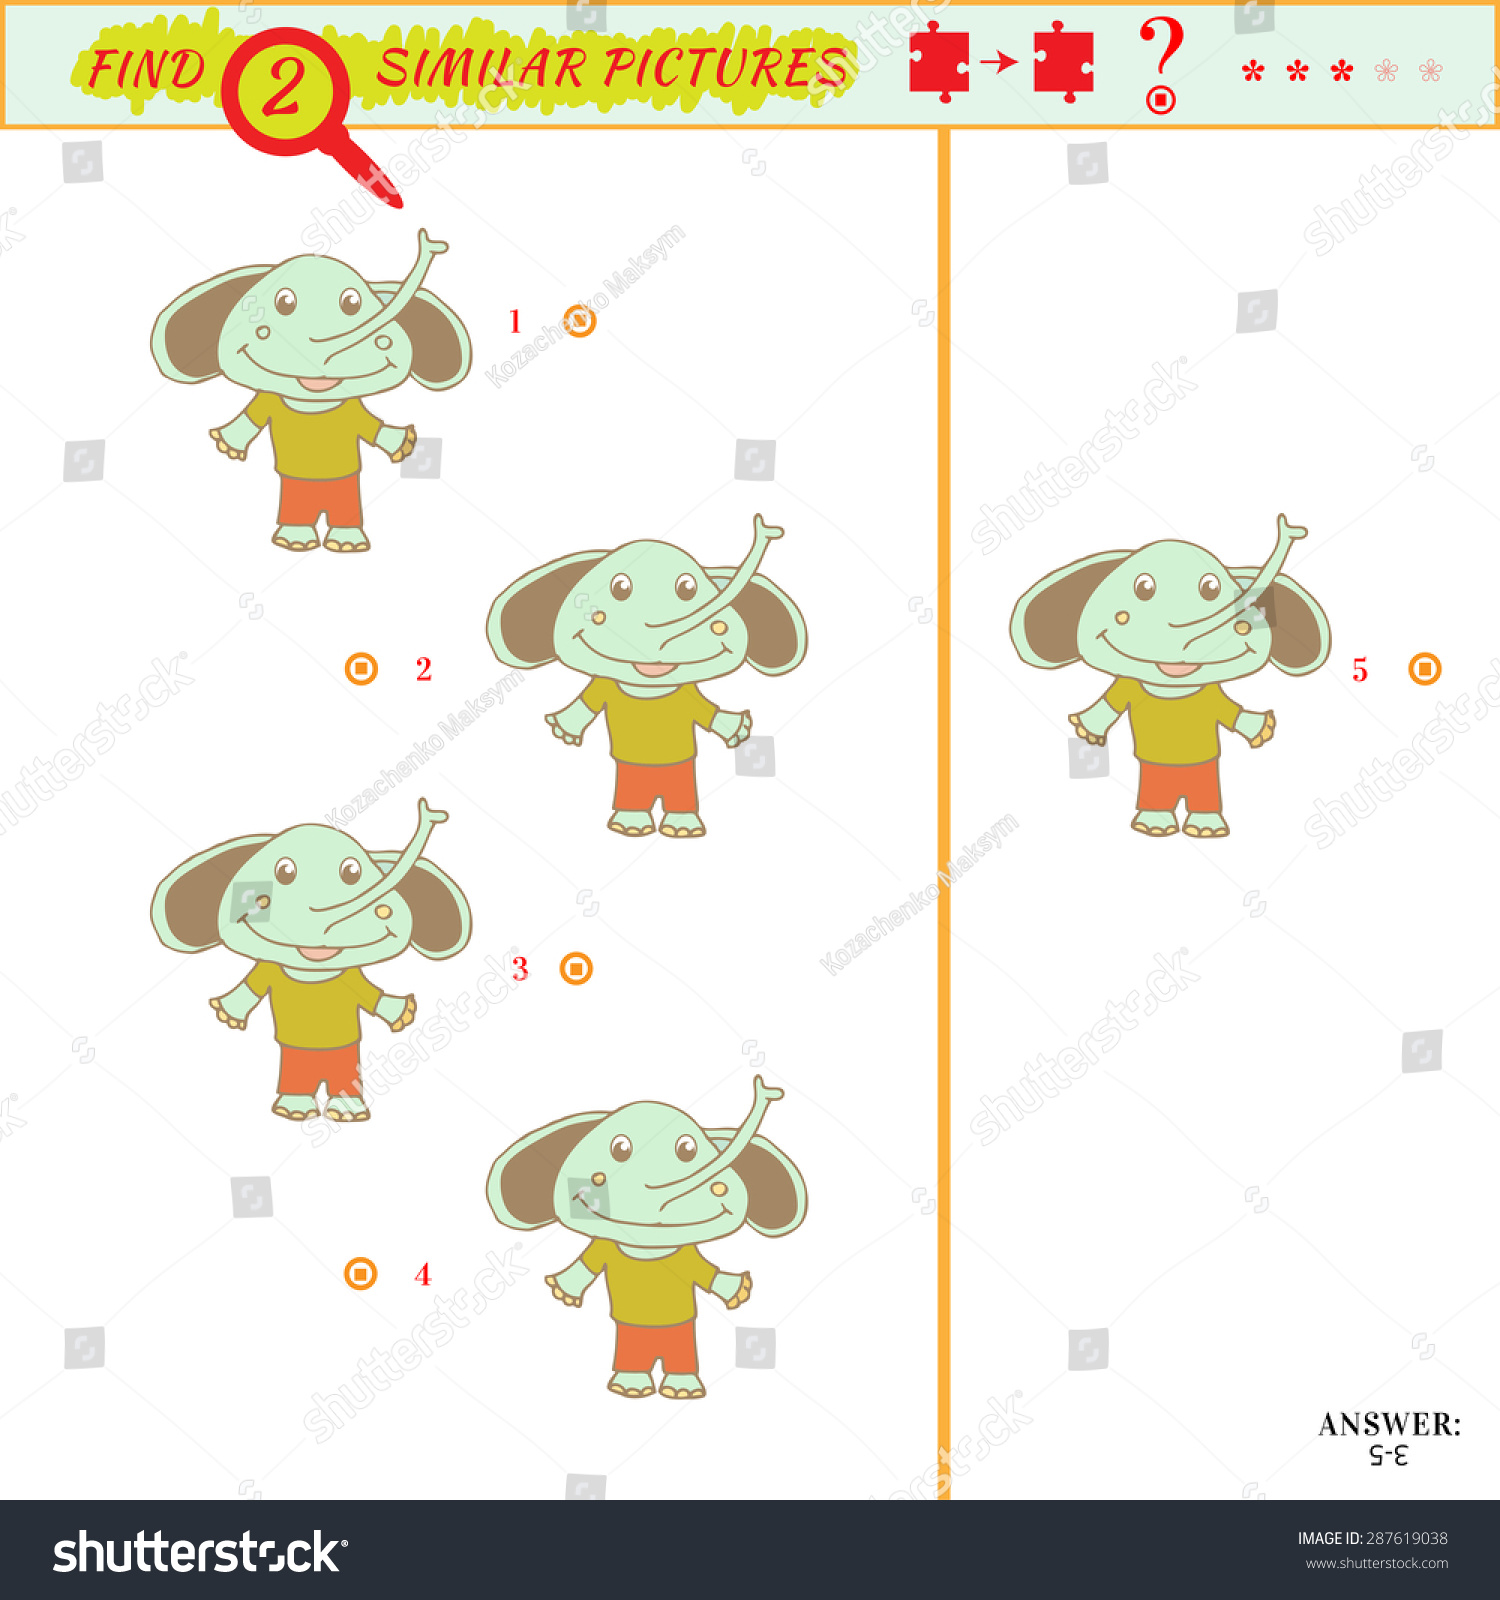 find two similar pictures puzzle picture stock vector 287619038